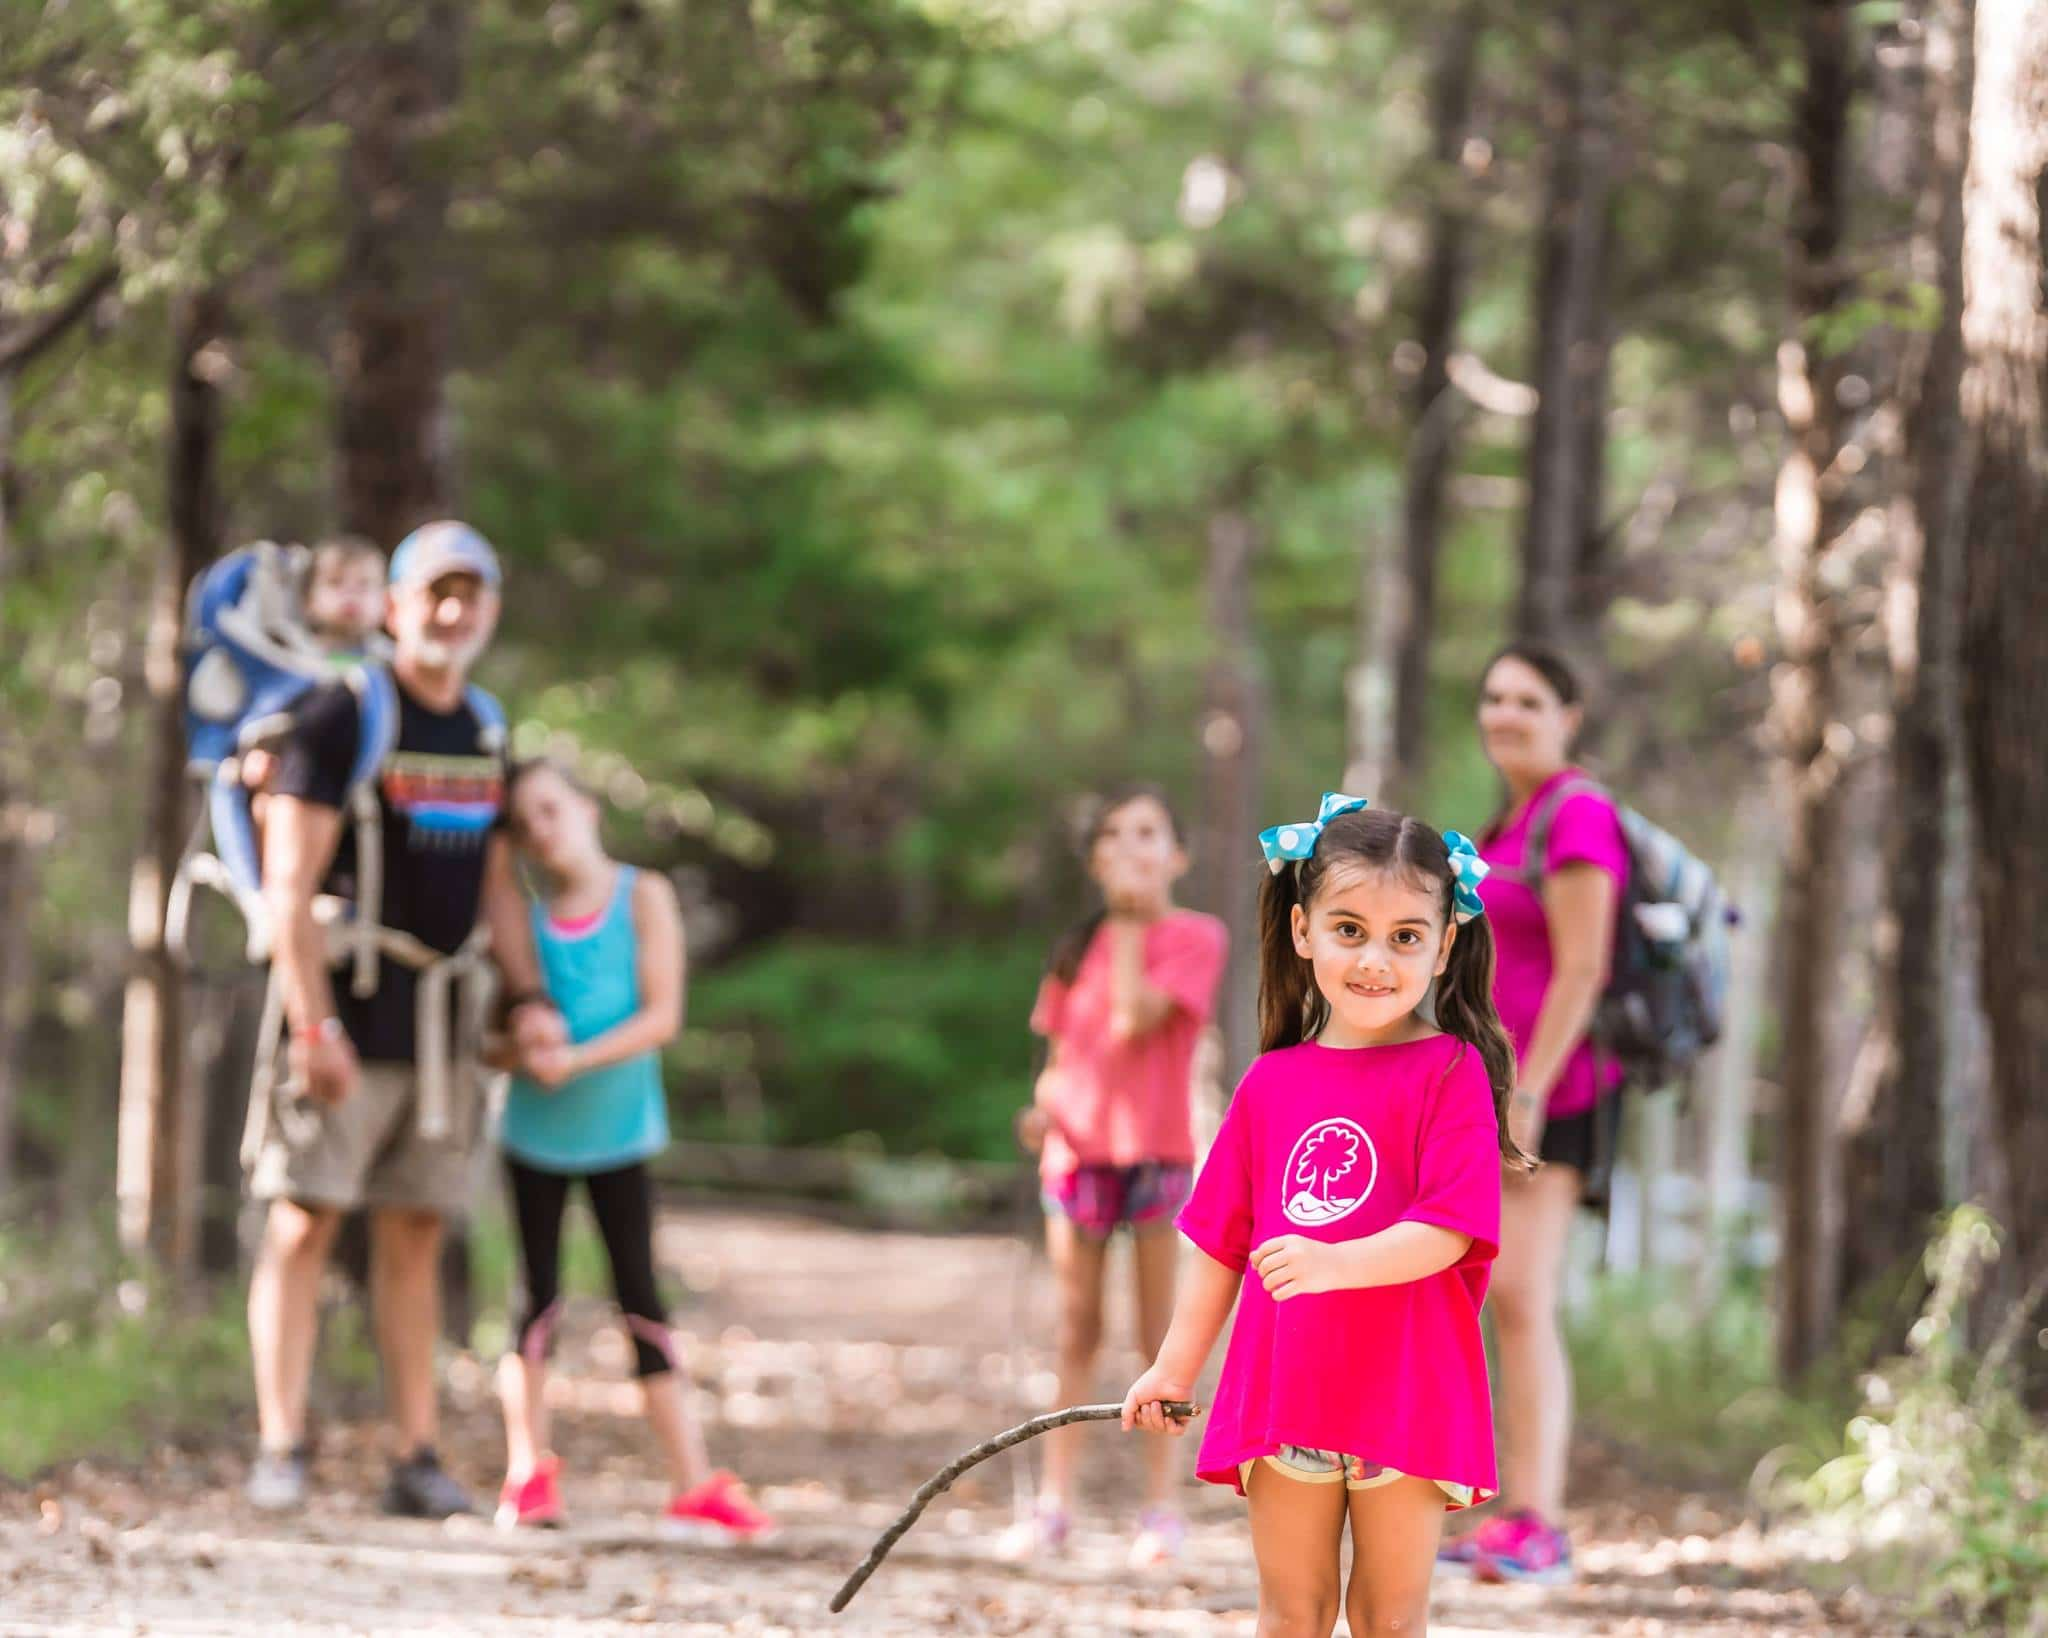 Family hiking in the woods with little girl smiling